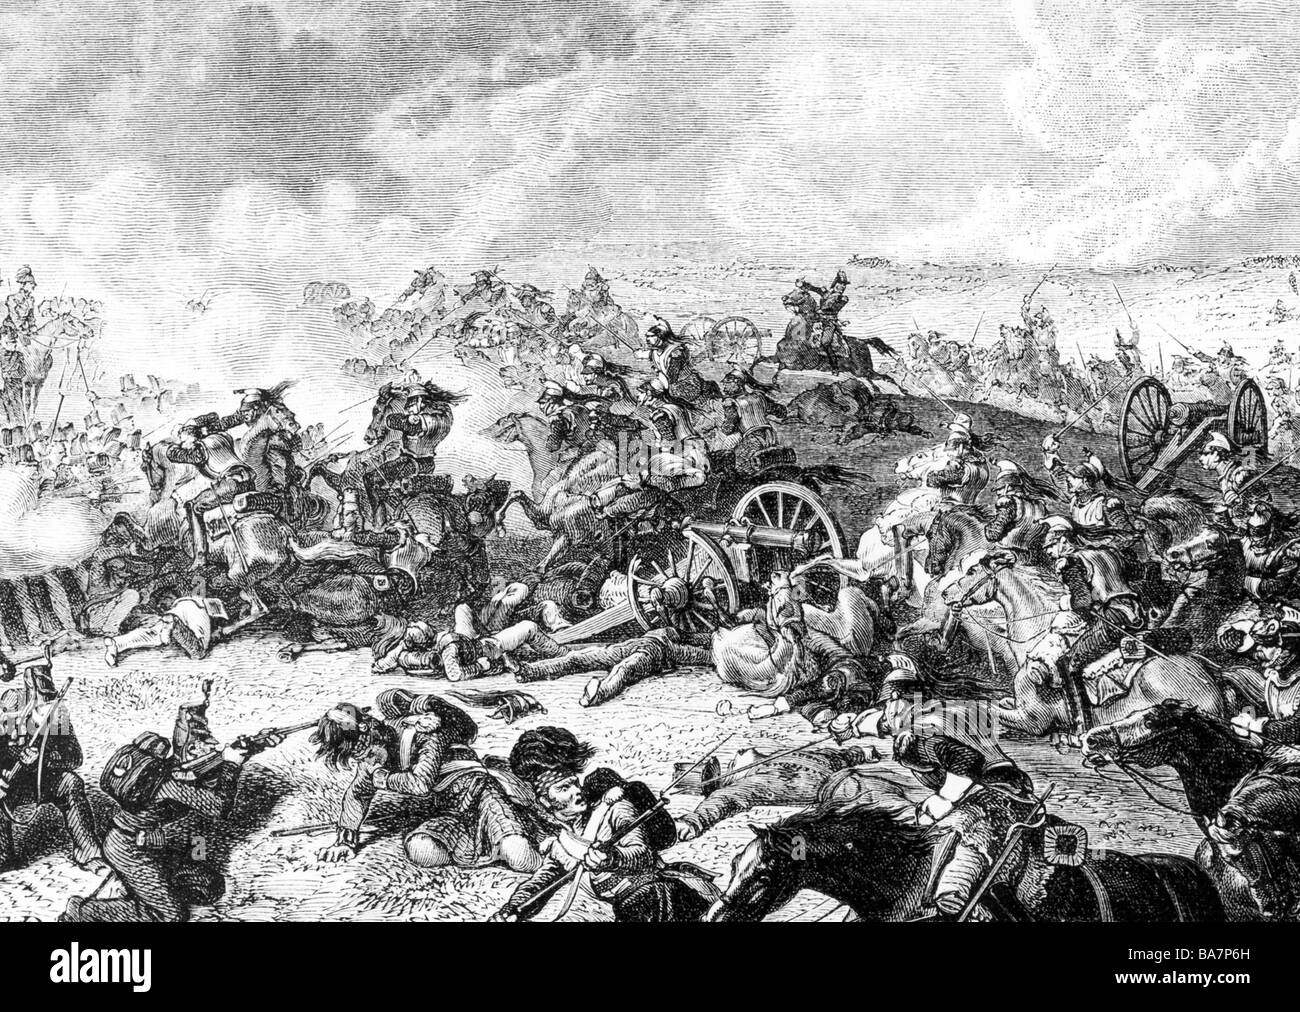 events, War of the Seventh Coalition 1815, Battle of Waterloo, 18.6.1815, charge of the French cavalry against the - Stock Image